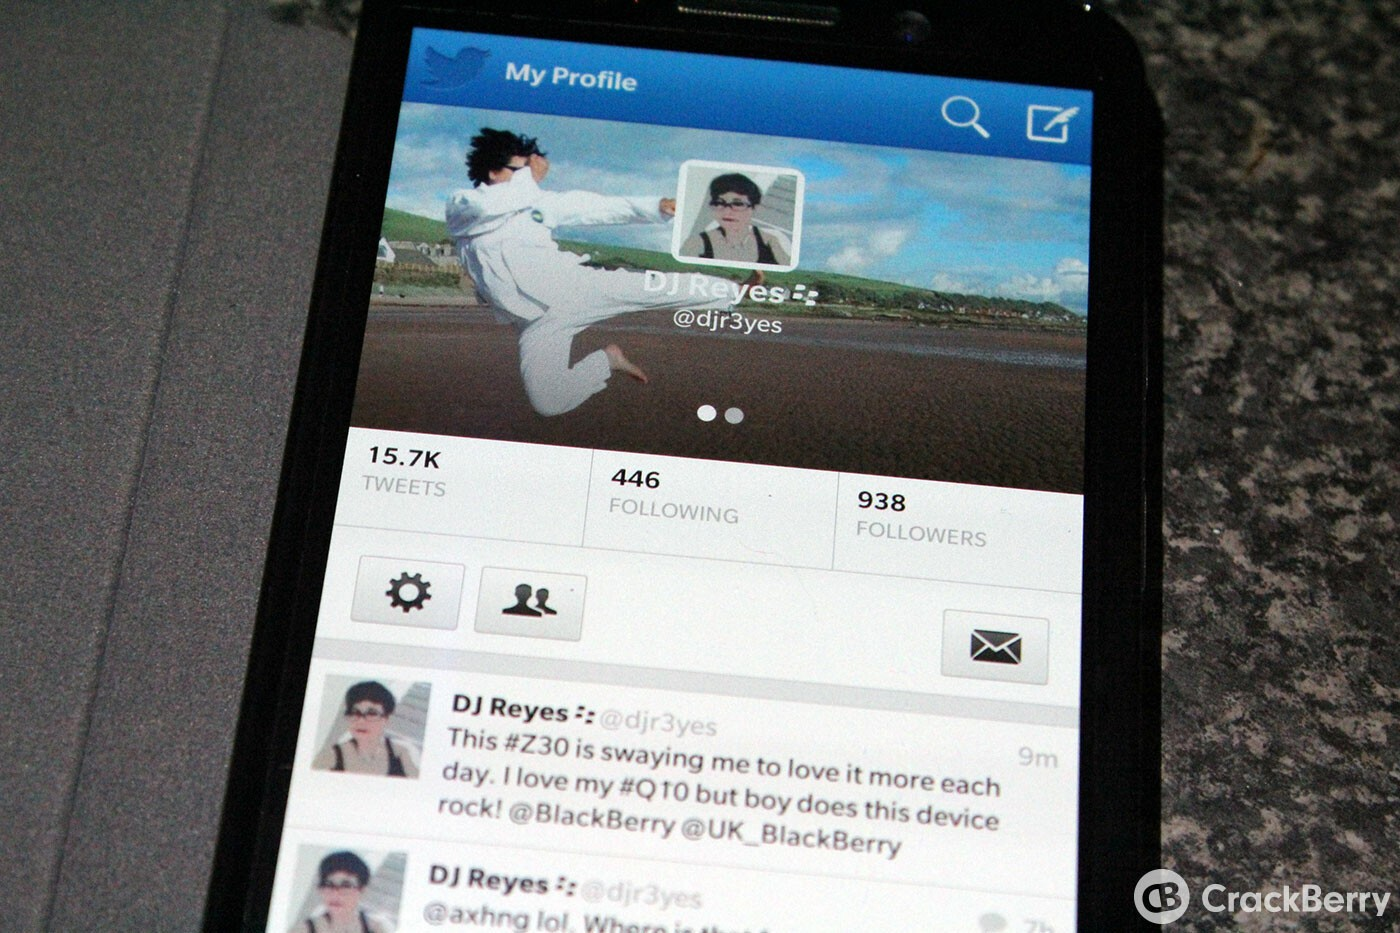 Twitter for BlackBerry 10 updated to v10.2.1.2